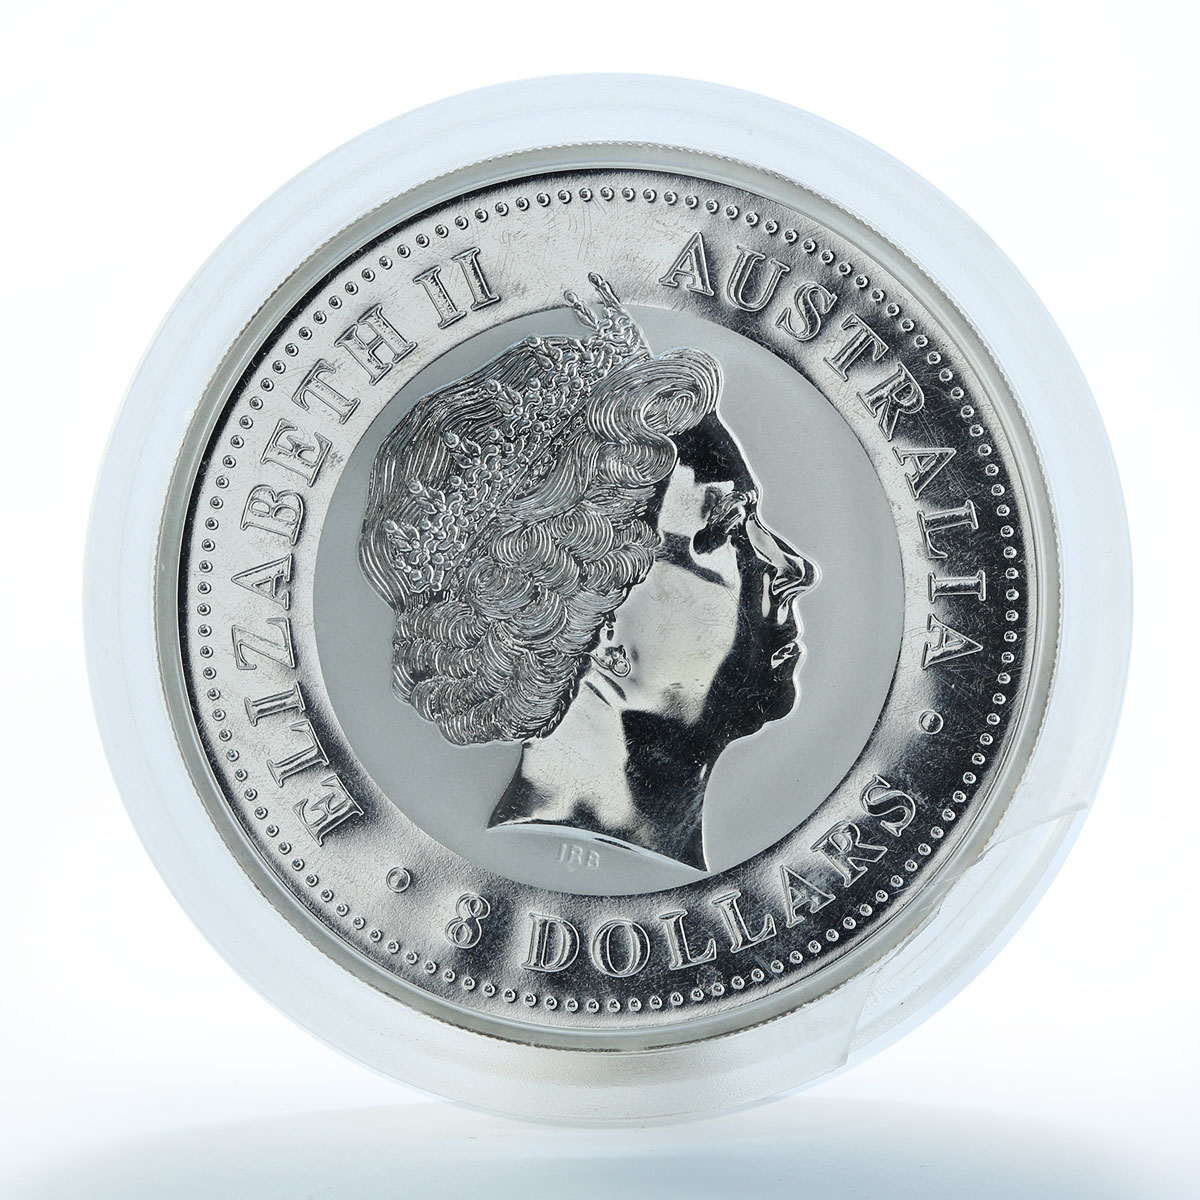 Australia 8 dollars Year of the Dog Lunnar Series I 5 oz Silver Coin 2006